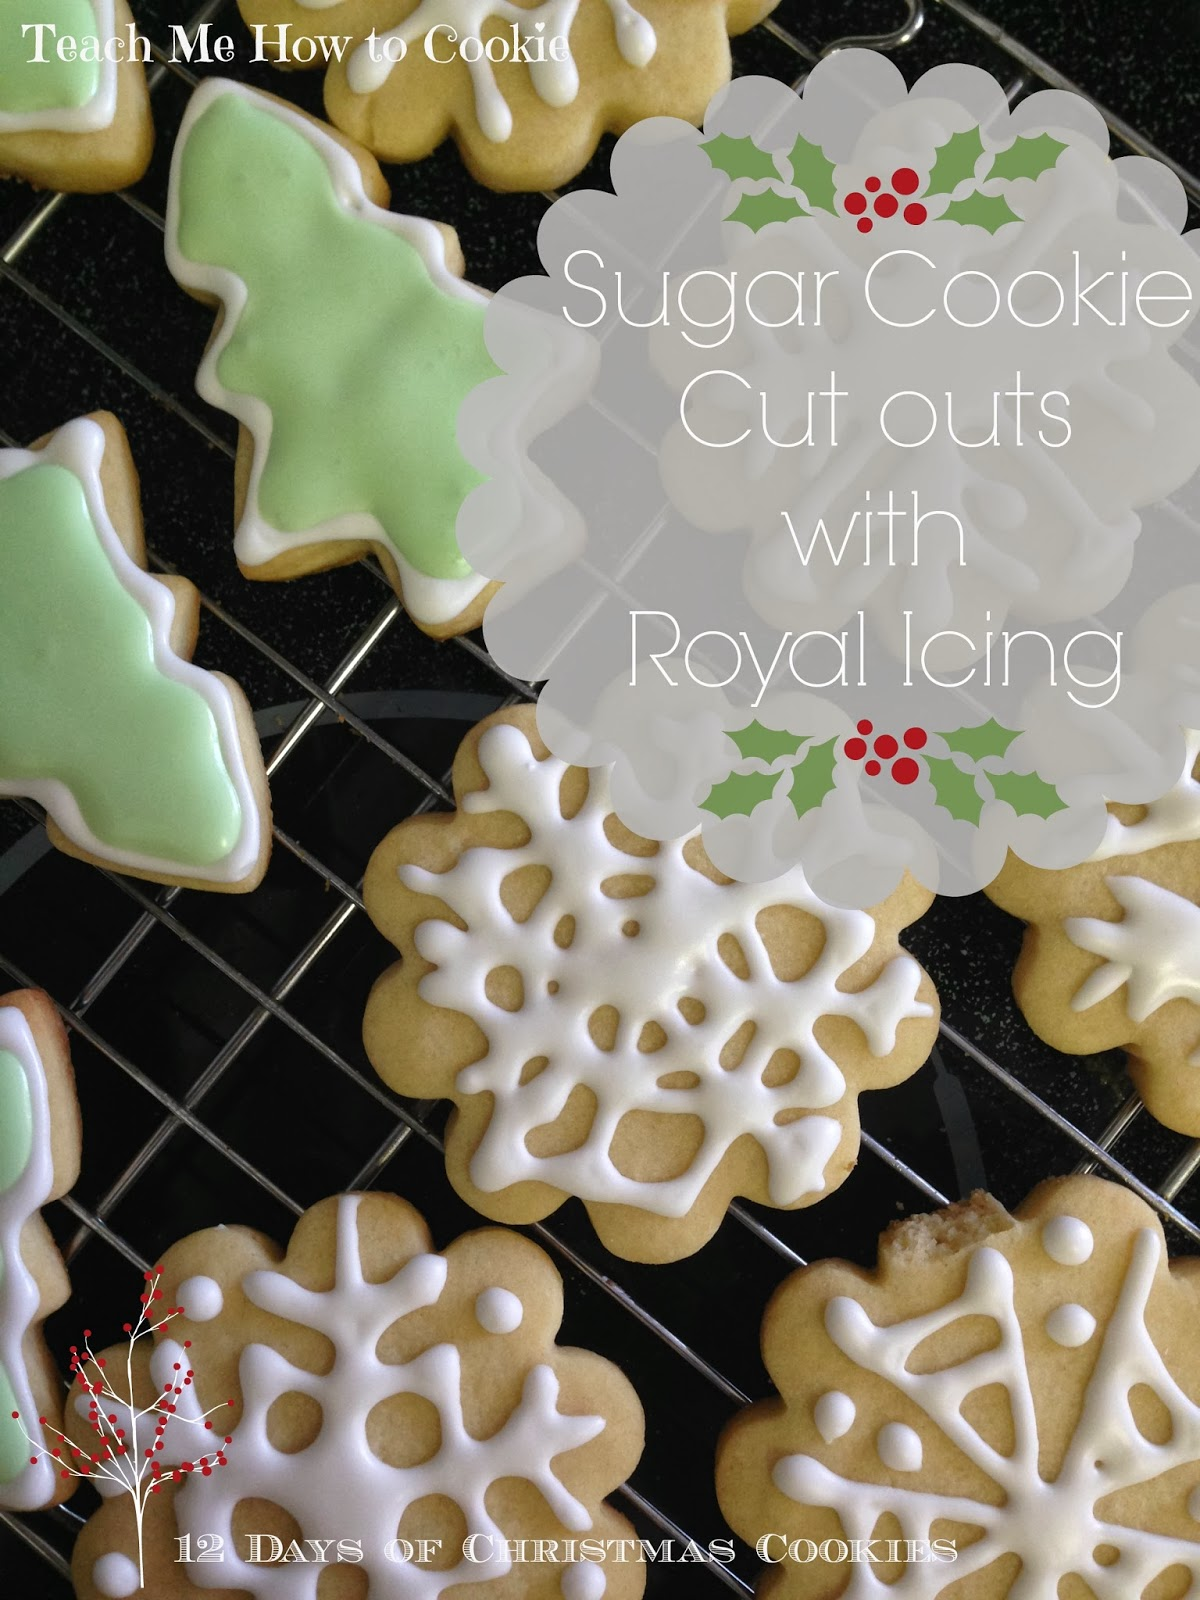 Sugar Cookie Cut outs with Royal Icing Recipe